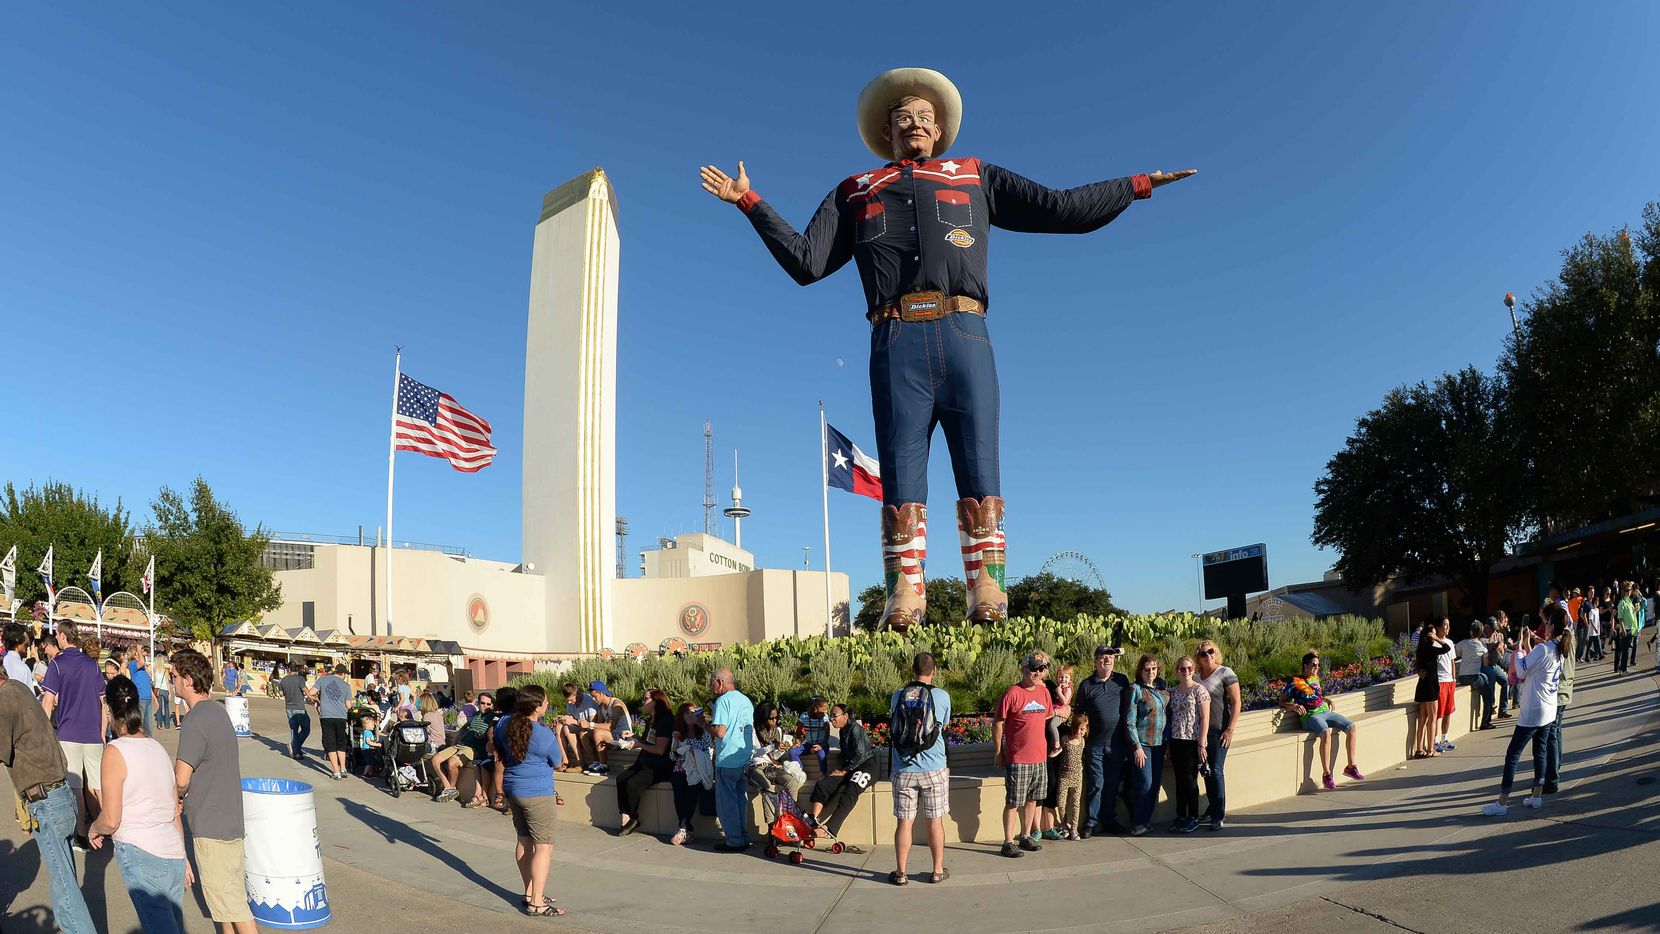 Howdy, Big Tex!  He'll be greeting folks at the State Fair of Texas.